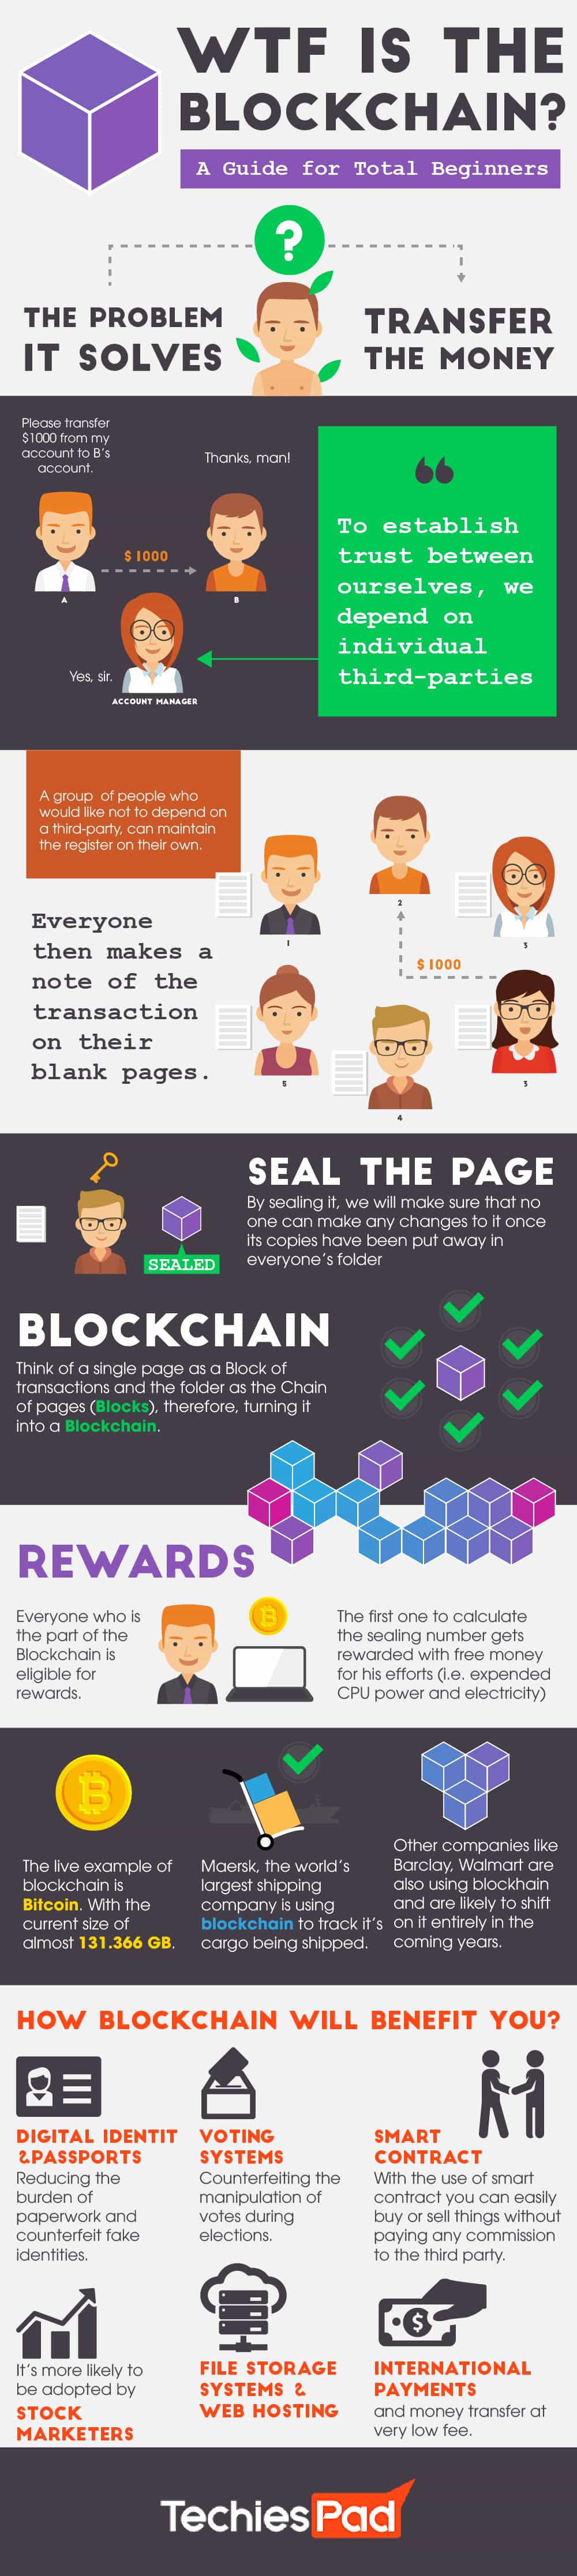 an ultimate beginner s guide to blockchain realcleardefense rh realcleardefense com blockchain ultimate beginner's guide to blockchain technology pdf complete beginners guide to blockchain